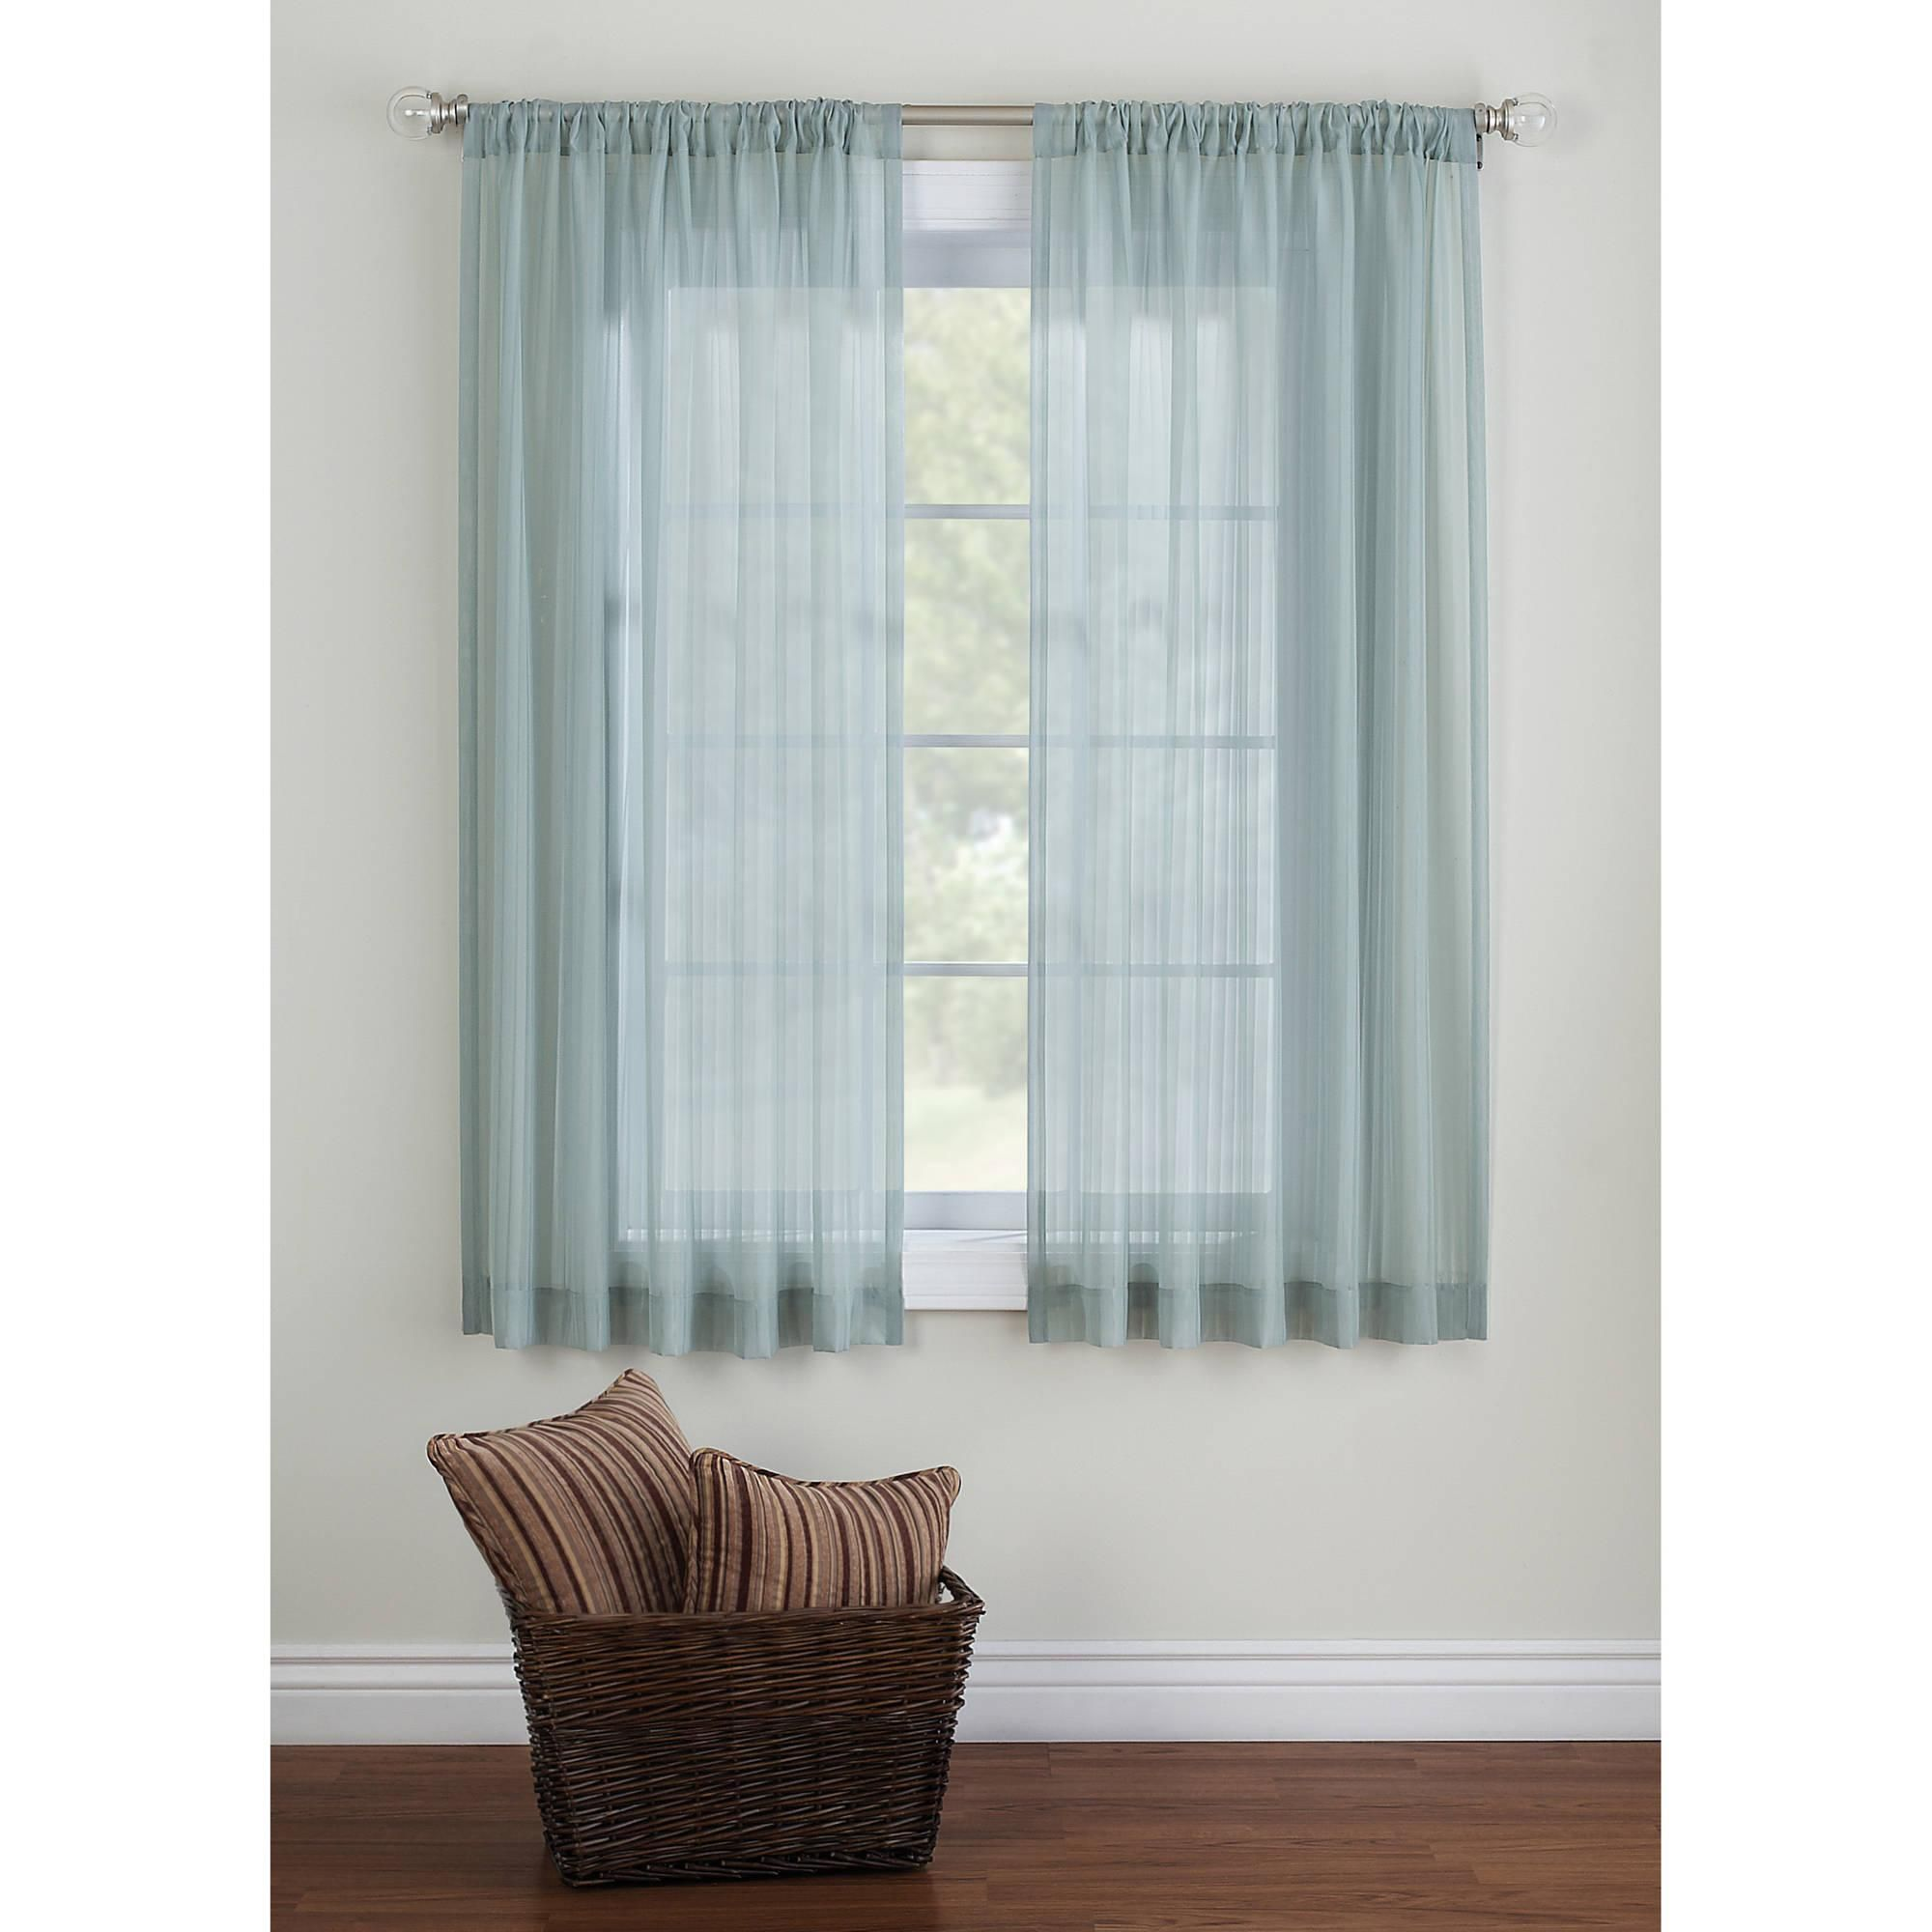 Sheer Curtains Curtains Drapes Walmart Com Sheer Window